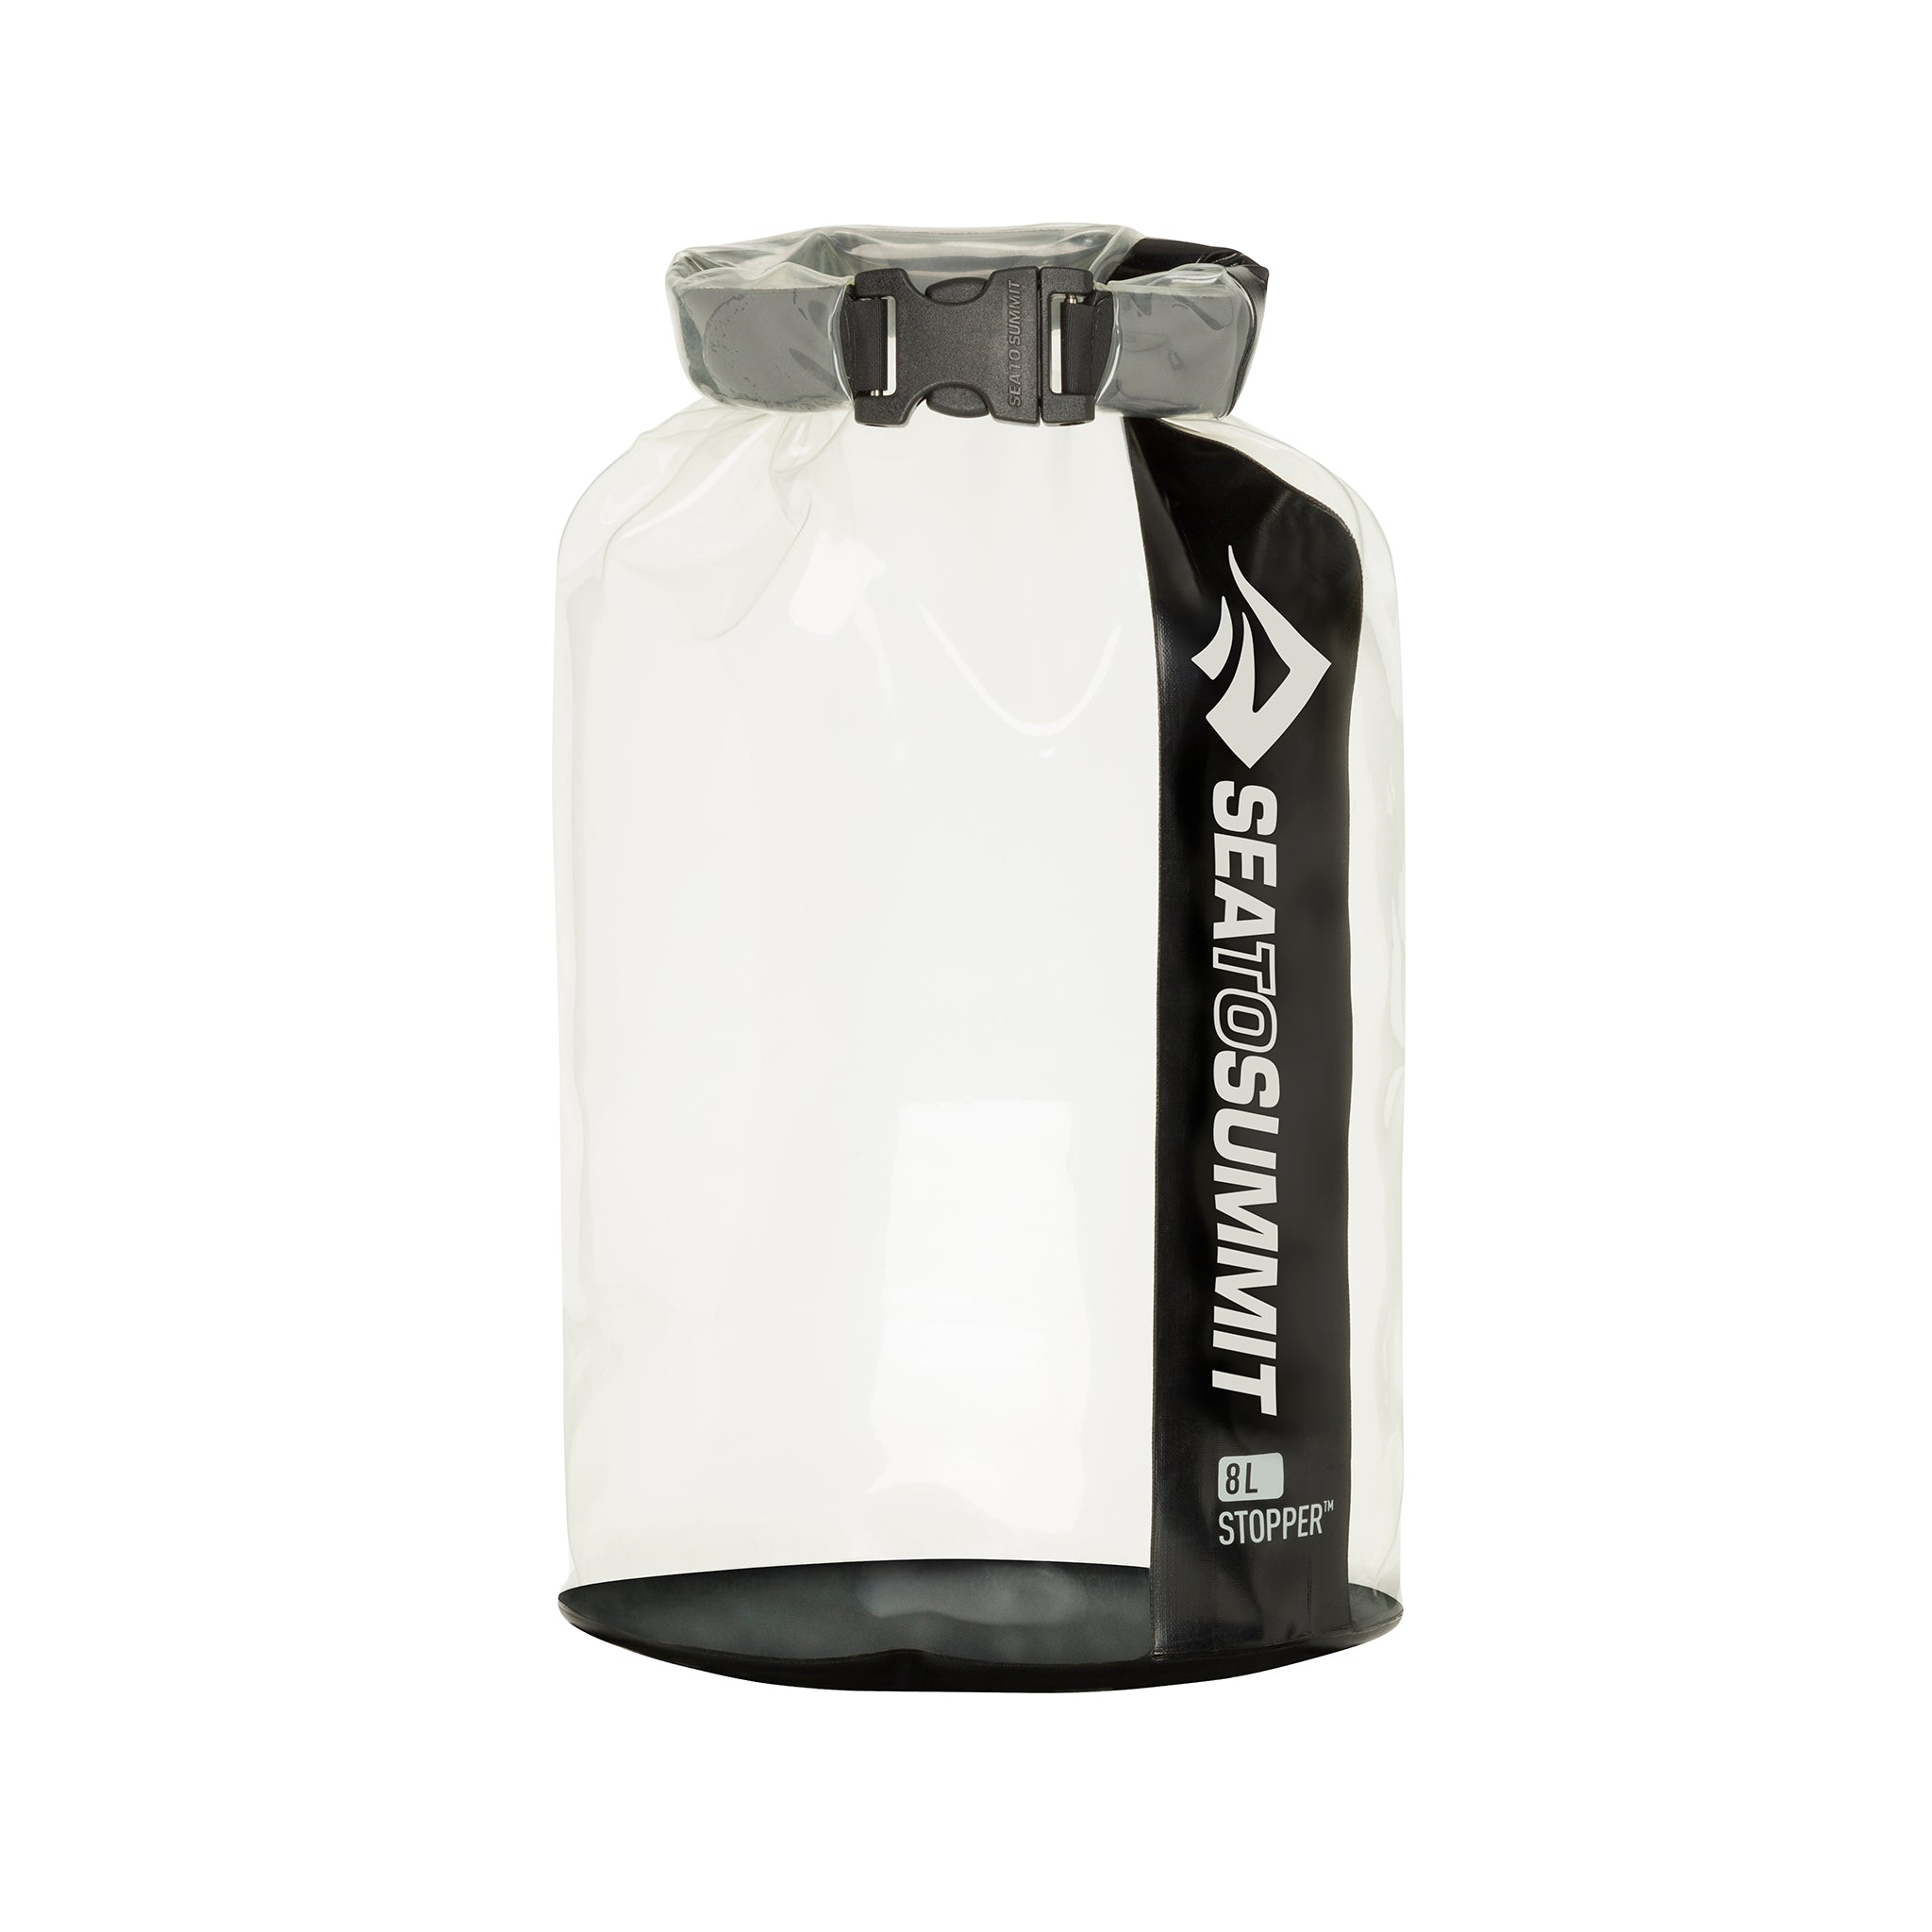 Clear Stopper _ durable waterproof dry bag _ 8 LITER